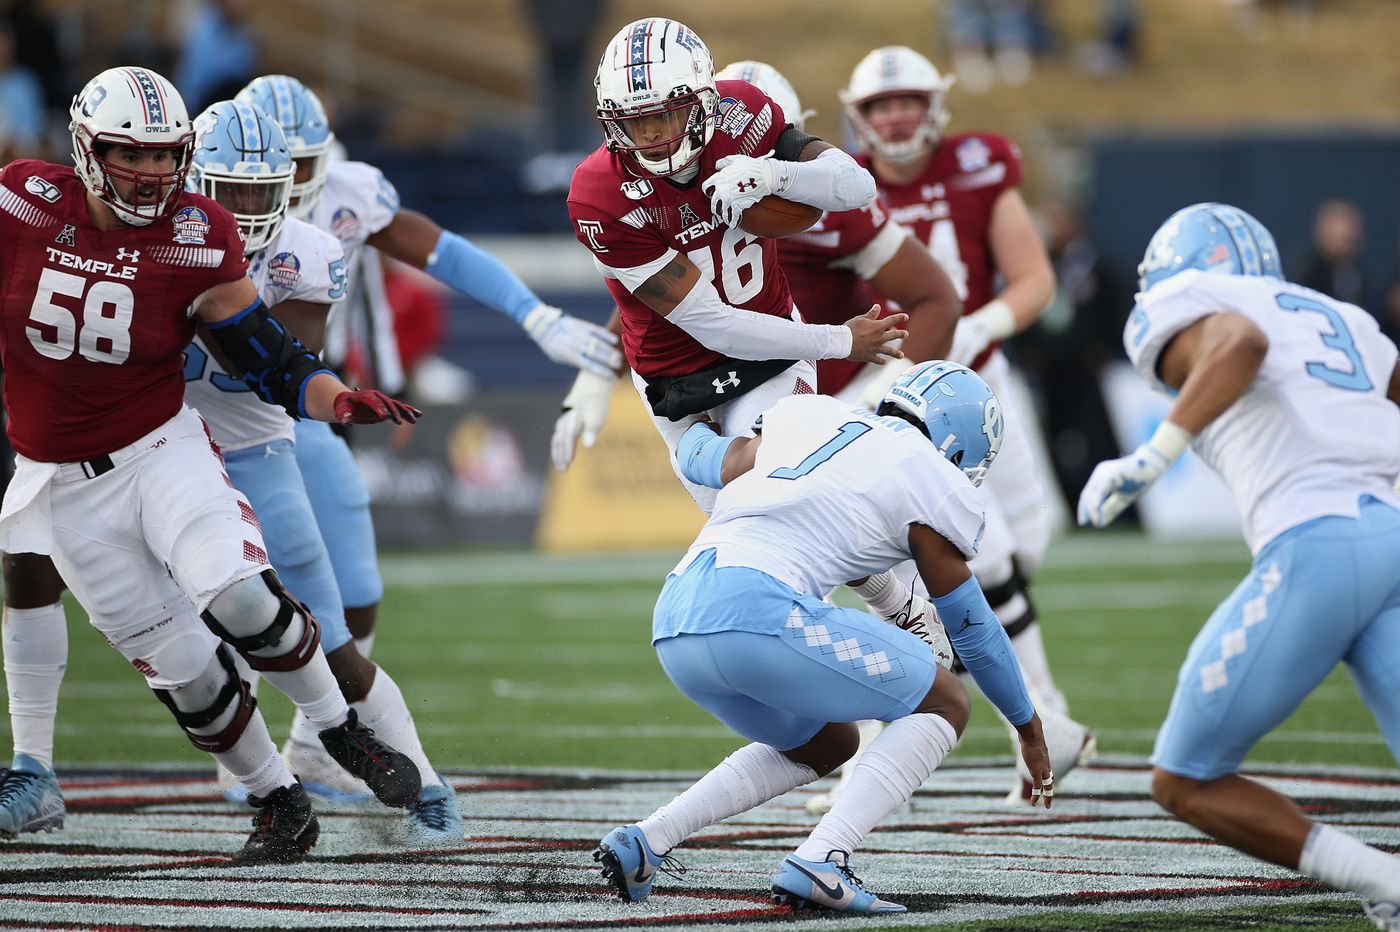 After frustrating loss, what does the future hold for Temple's football team? | Marc Narducci